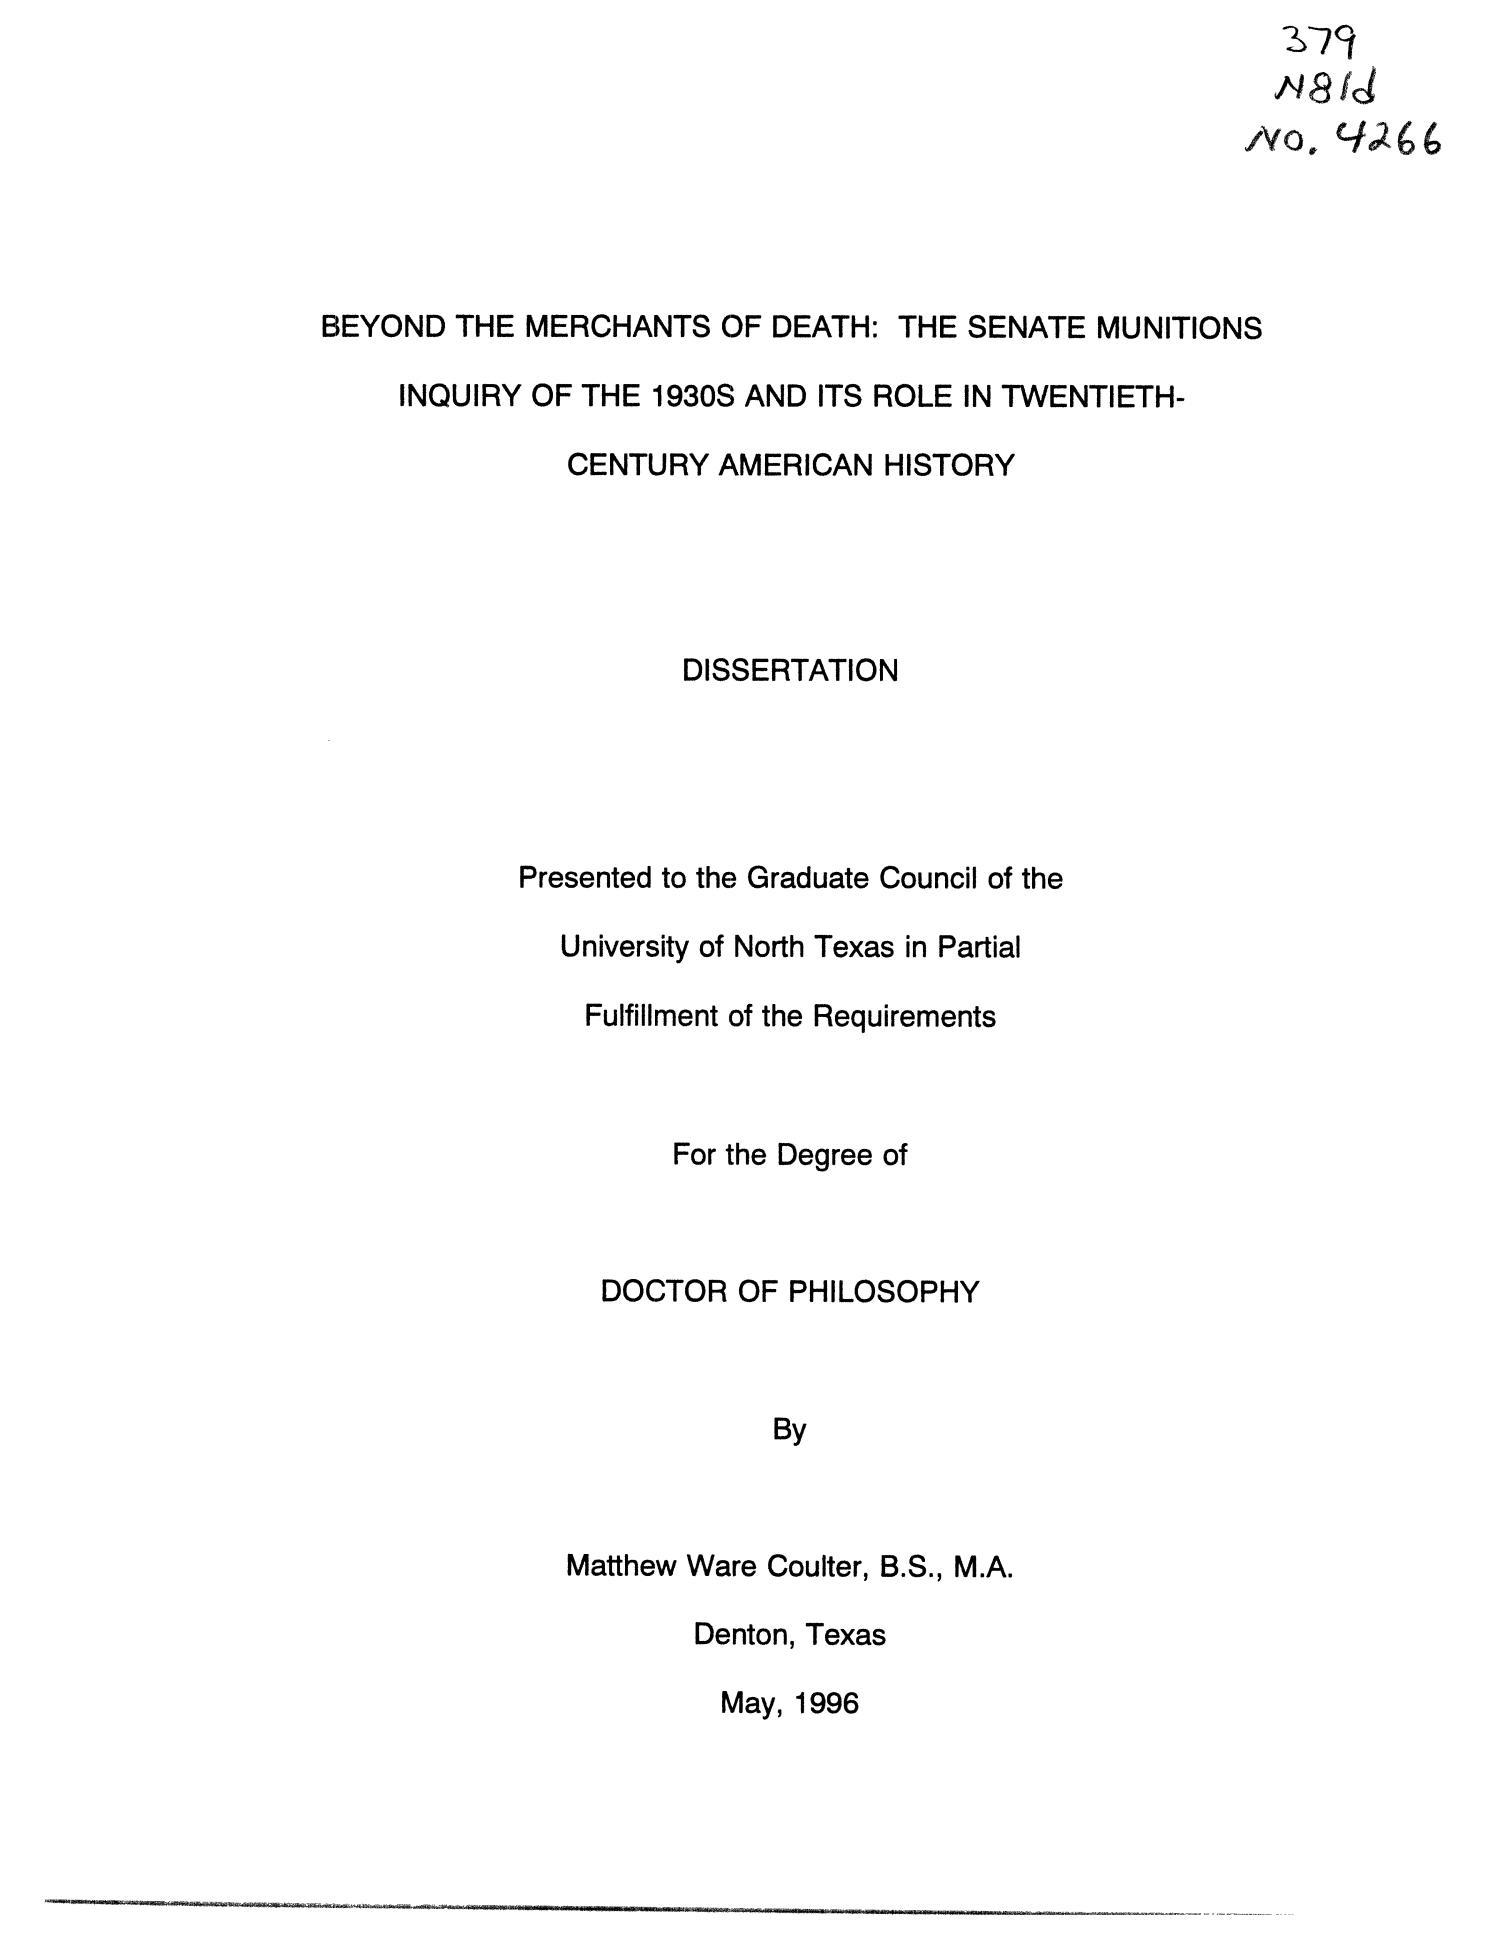 Beyond the Merchants of Death: the Senate Munitions Inquiry of the 1930s and its Role in Twentieth-Century American History                                                                                                      Title Page